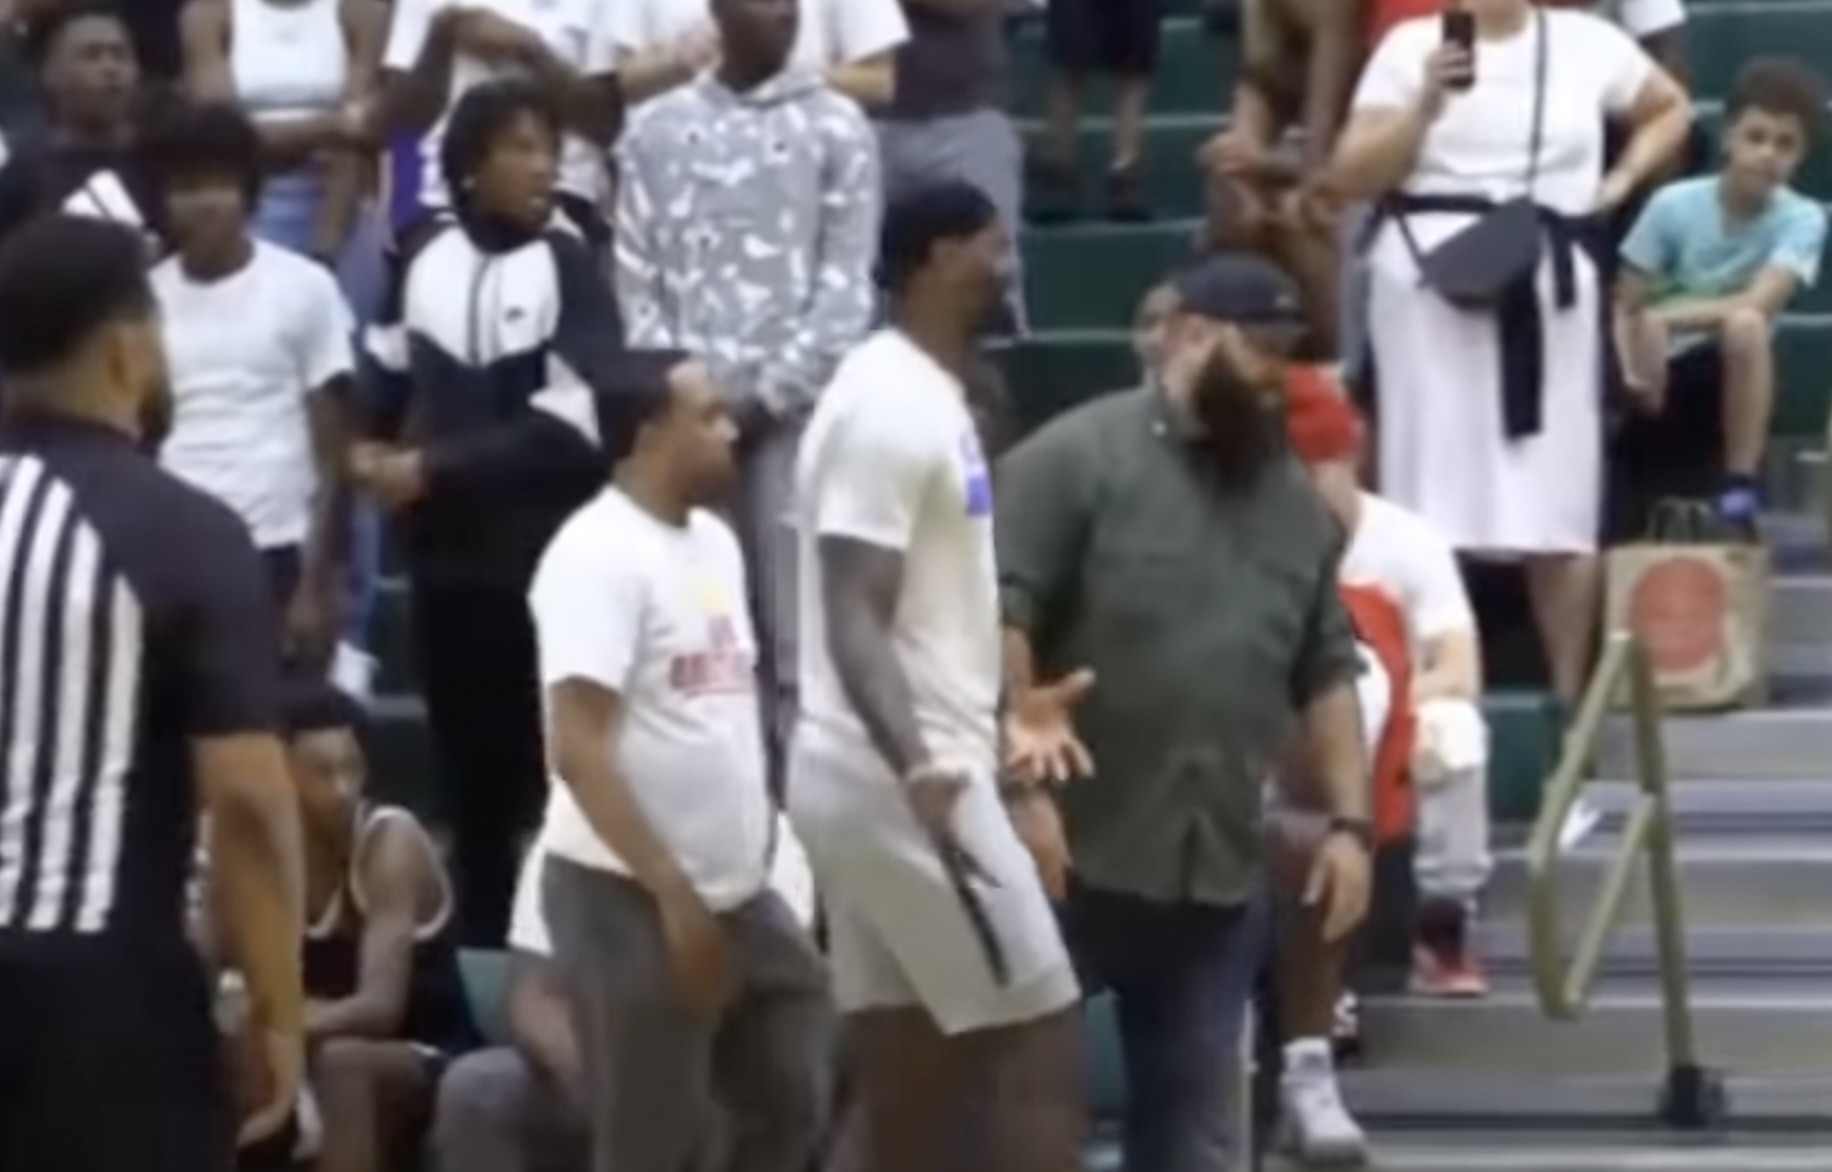 WATCH: LeBron James Makes a Scene at son Bronny's Basketball Game Over Announcer's Comment